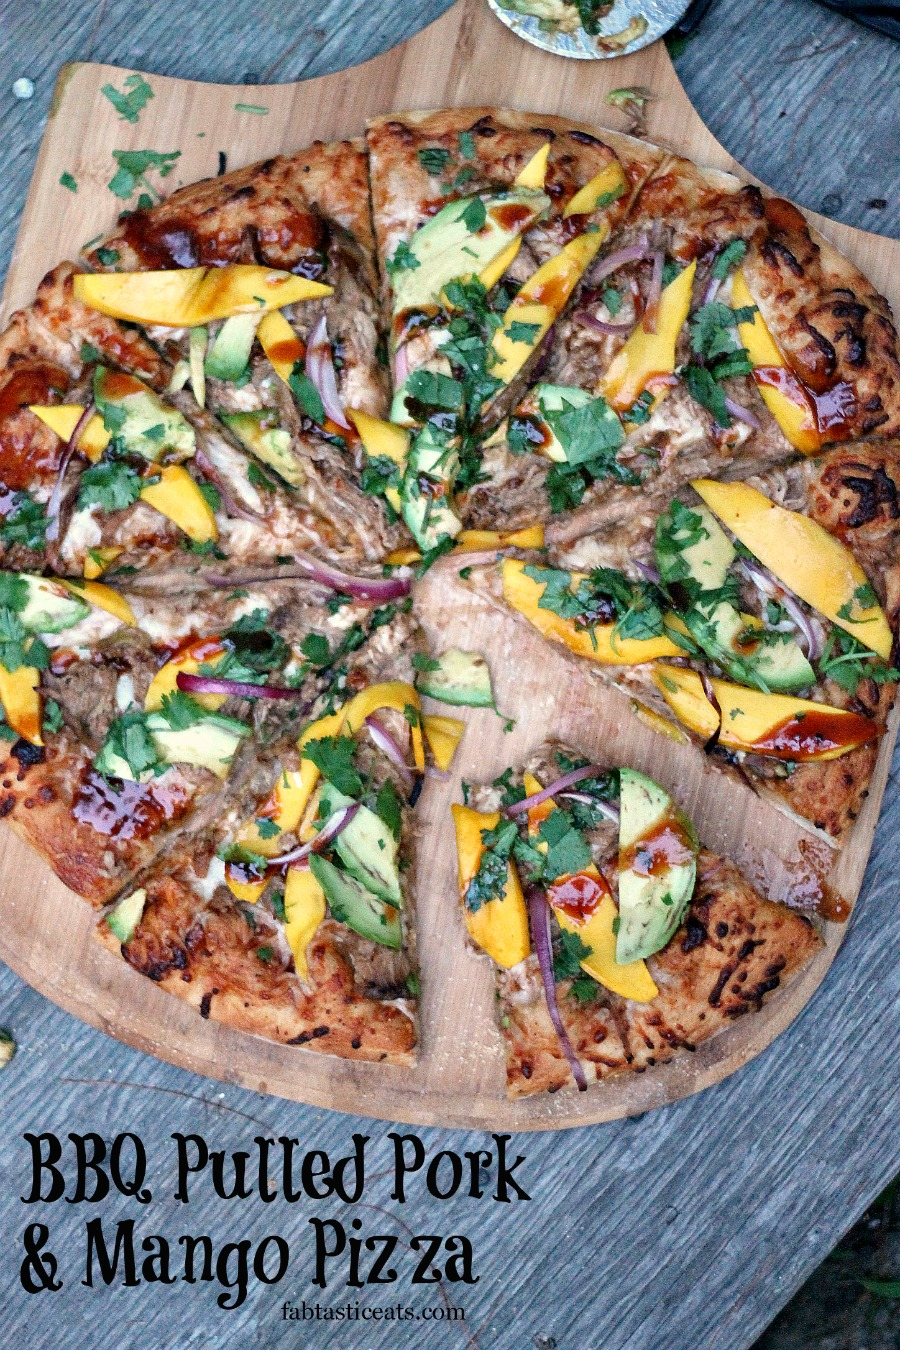 BBQ Pulled Pork & Mango Pizza